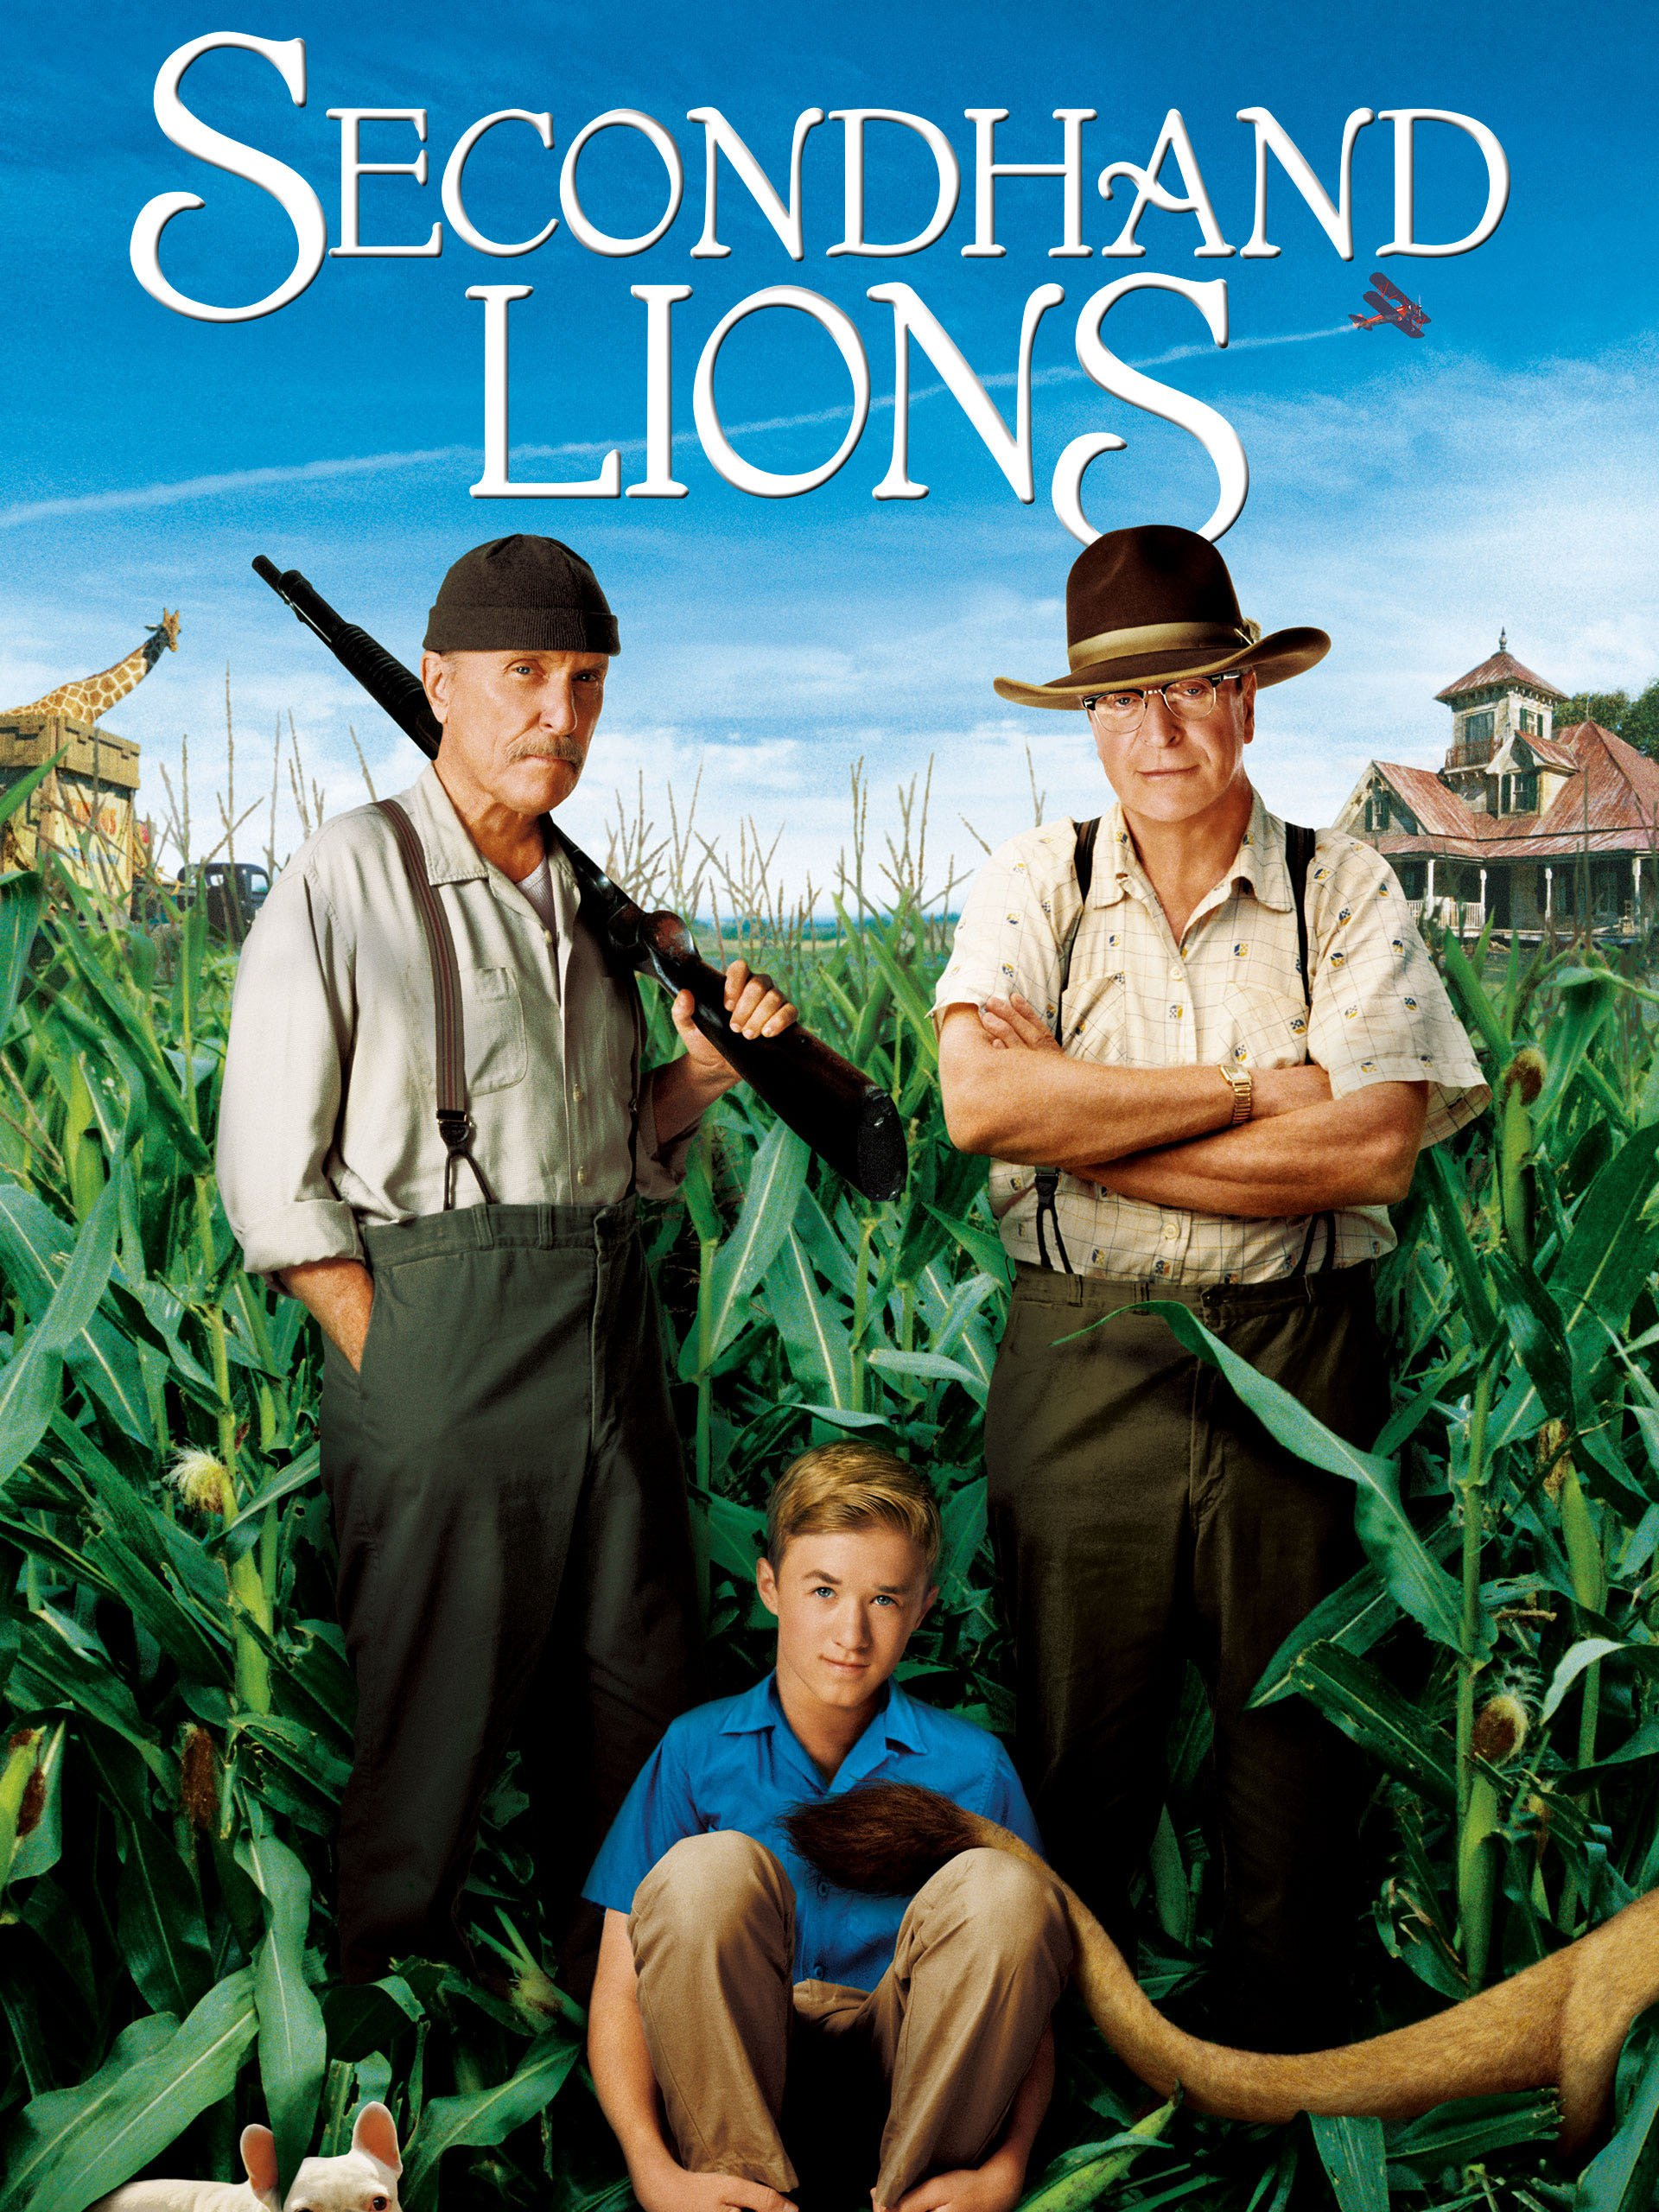 Secondhand Lions (2003) - Amazon Prime Instant Video